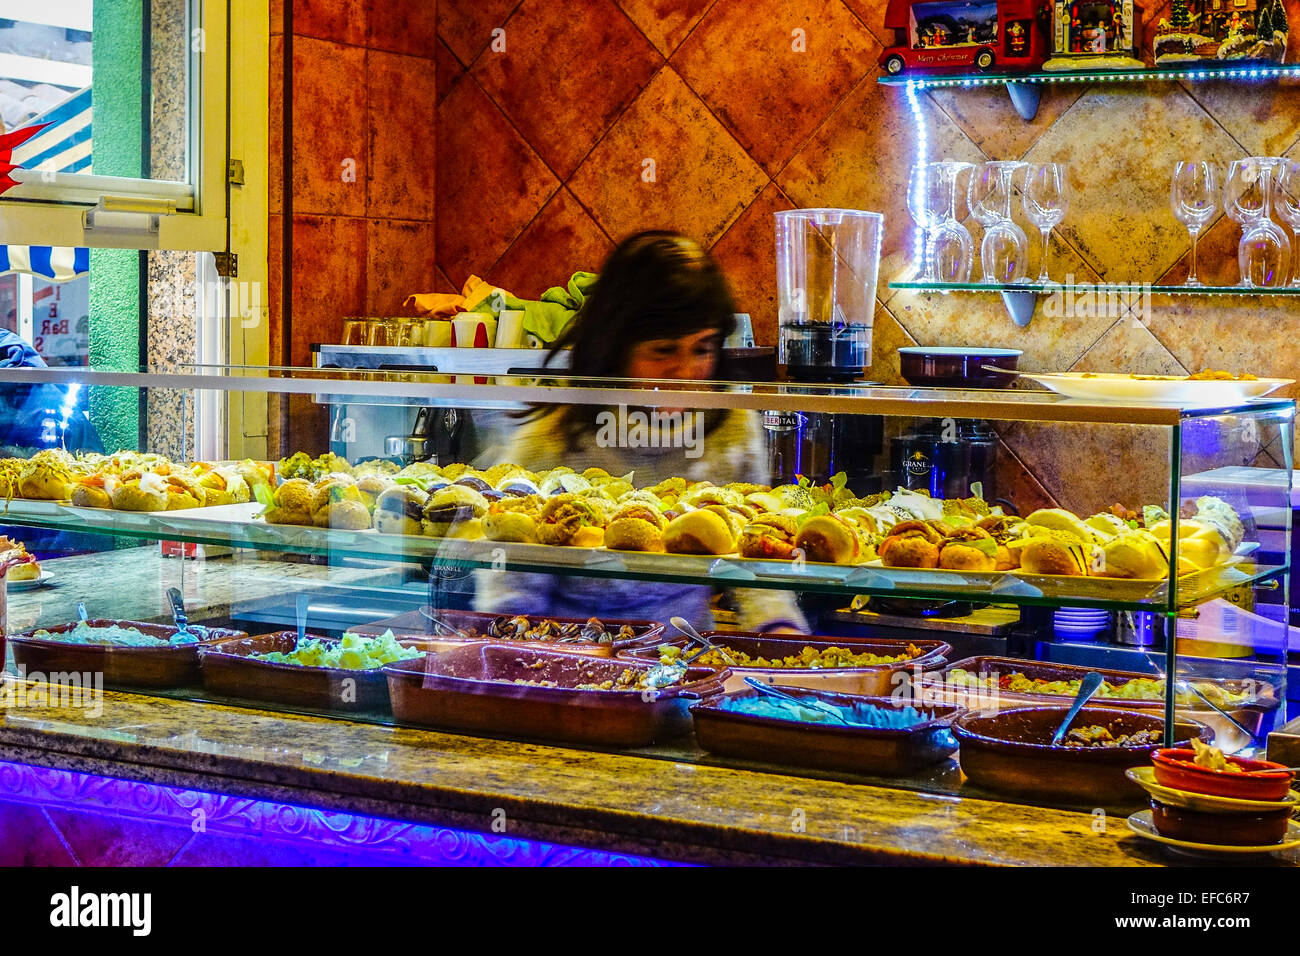 Tapas Food In Glass Display Cabinet In Bar, Benidorm, Costa Blanca, Spain